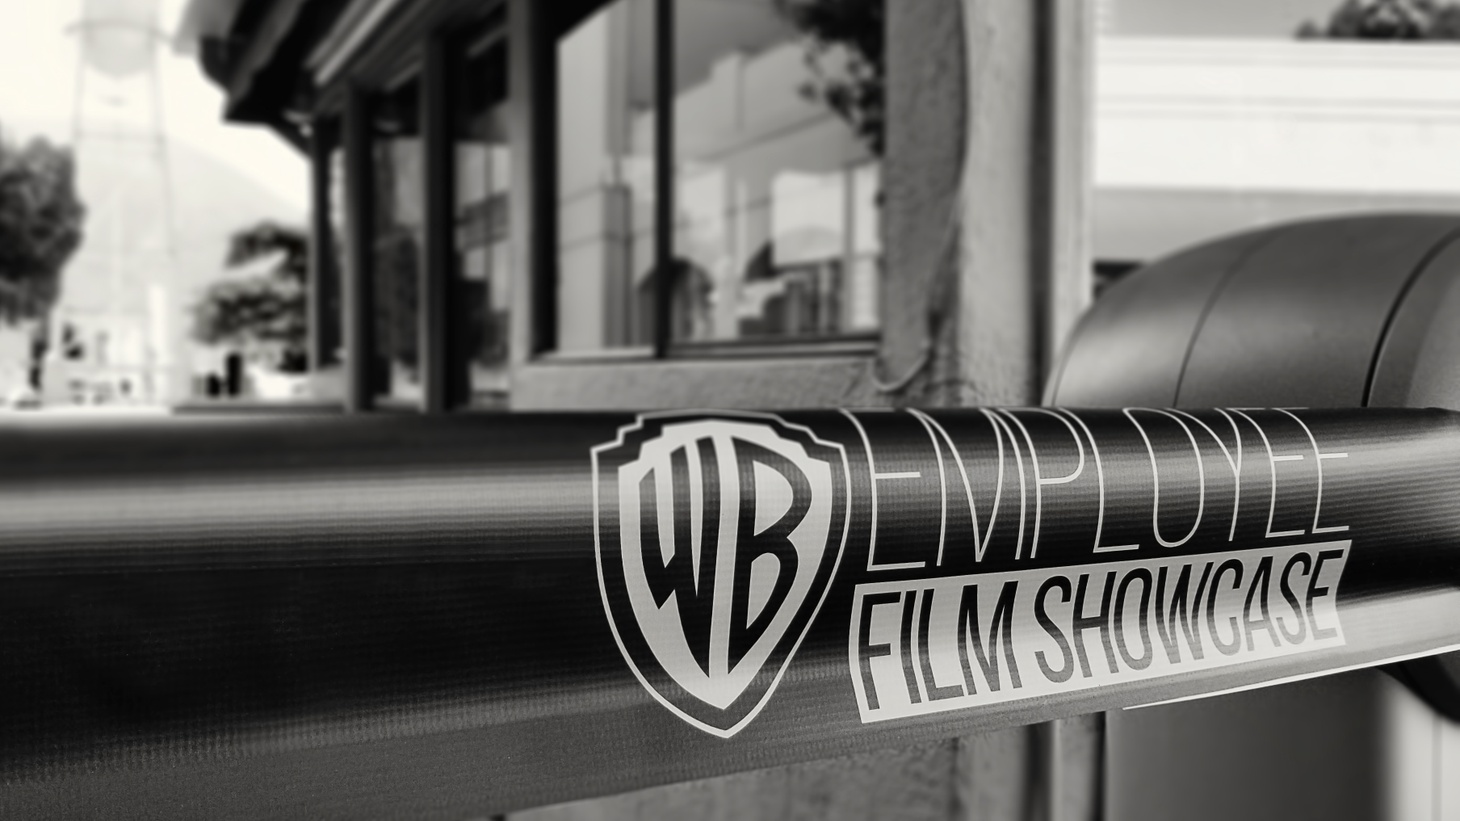 Warner Bros Employee Film Showcase.